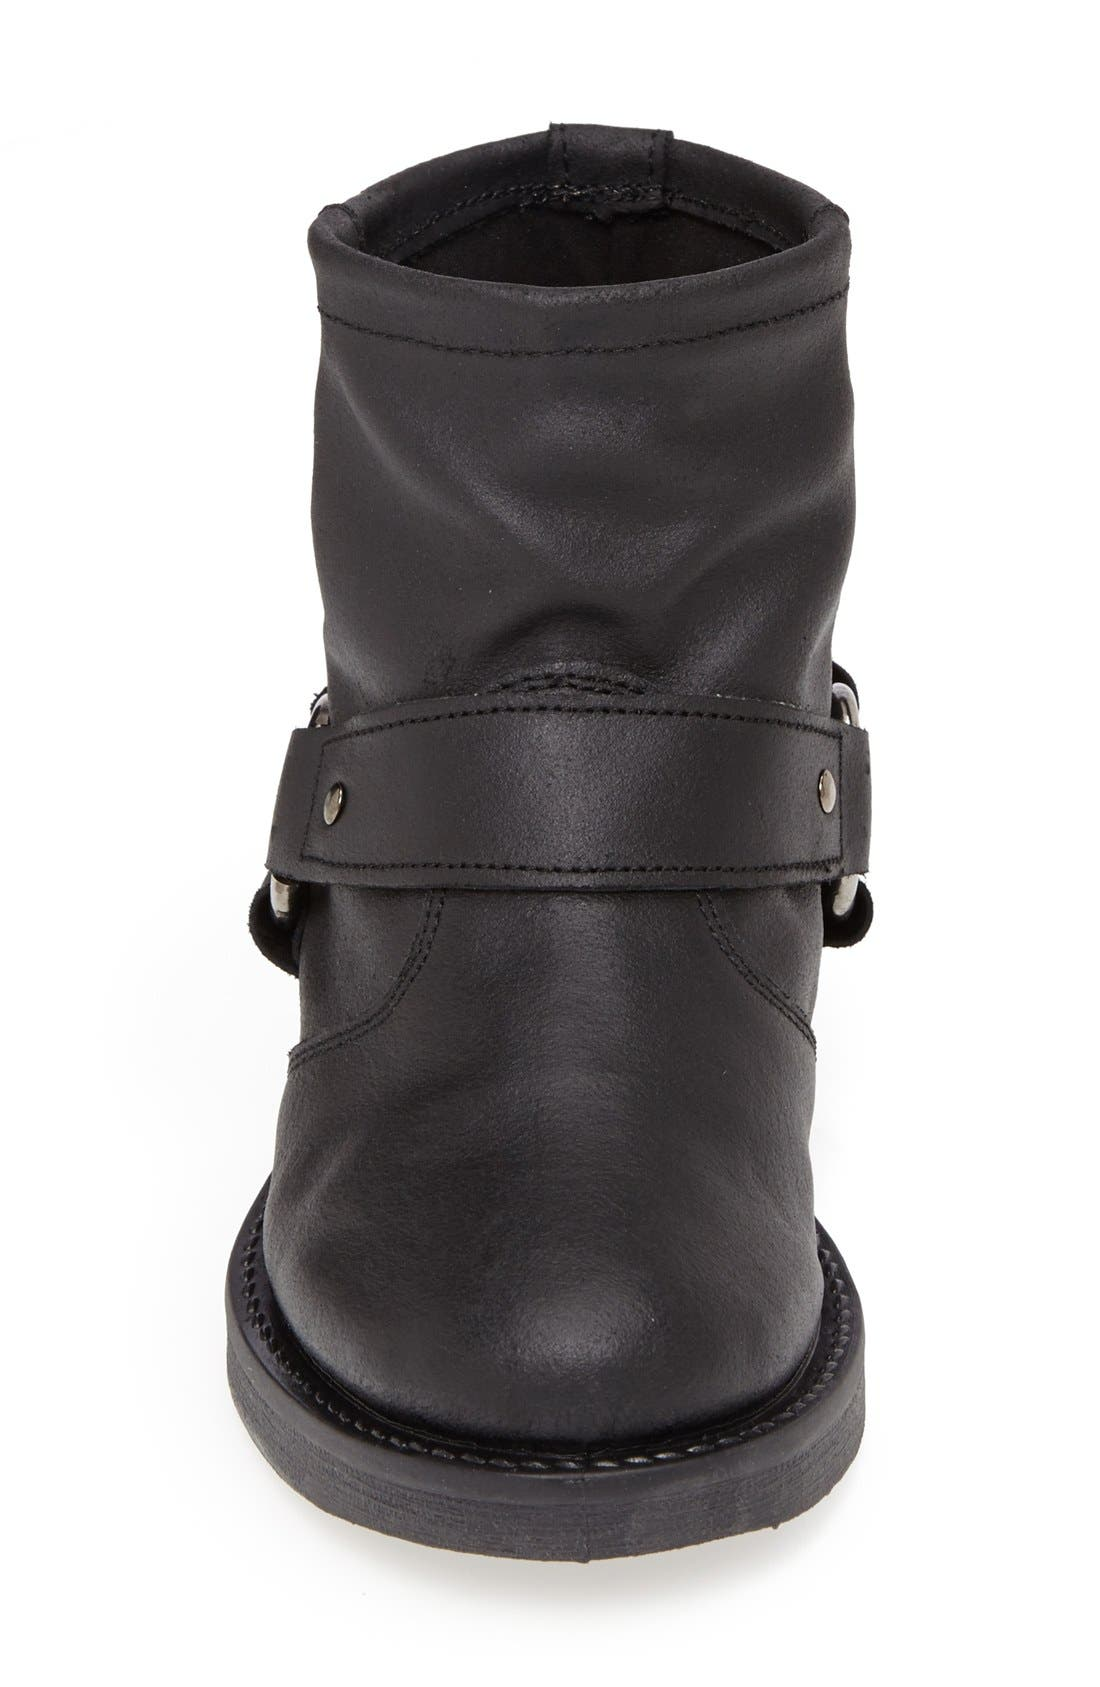 Alternate Image 3  - Topshop 'Buster' Leather Harness Biker Boot (Women)